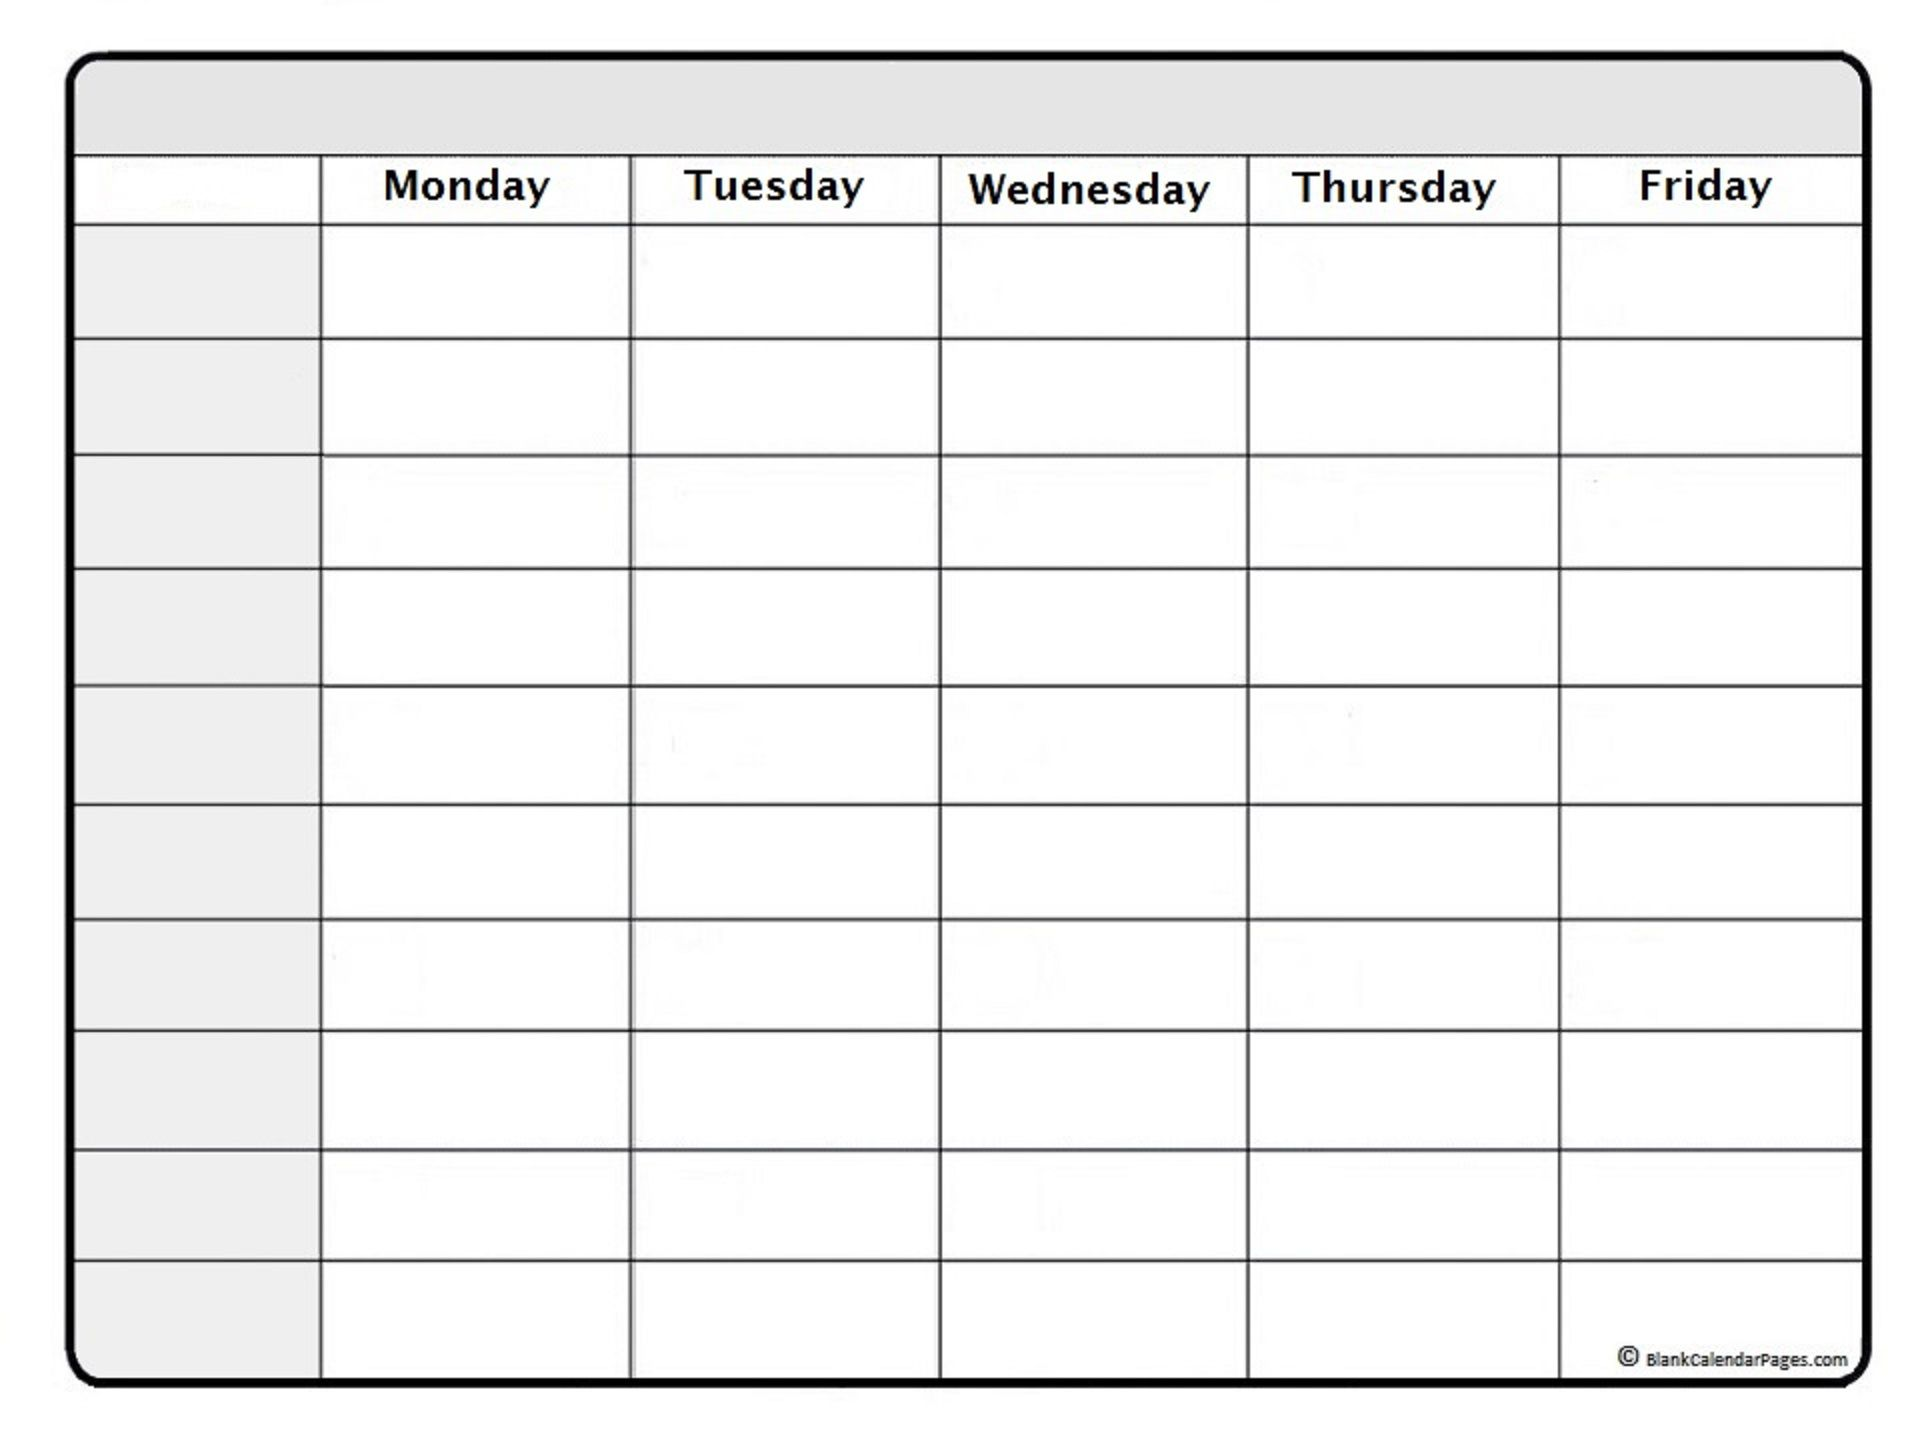 002 Remarkable Weekly Calendar 2020 Template Photo  Appointment BlankFull